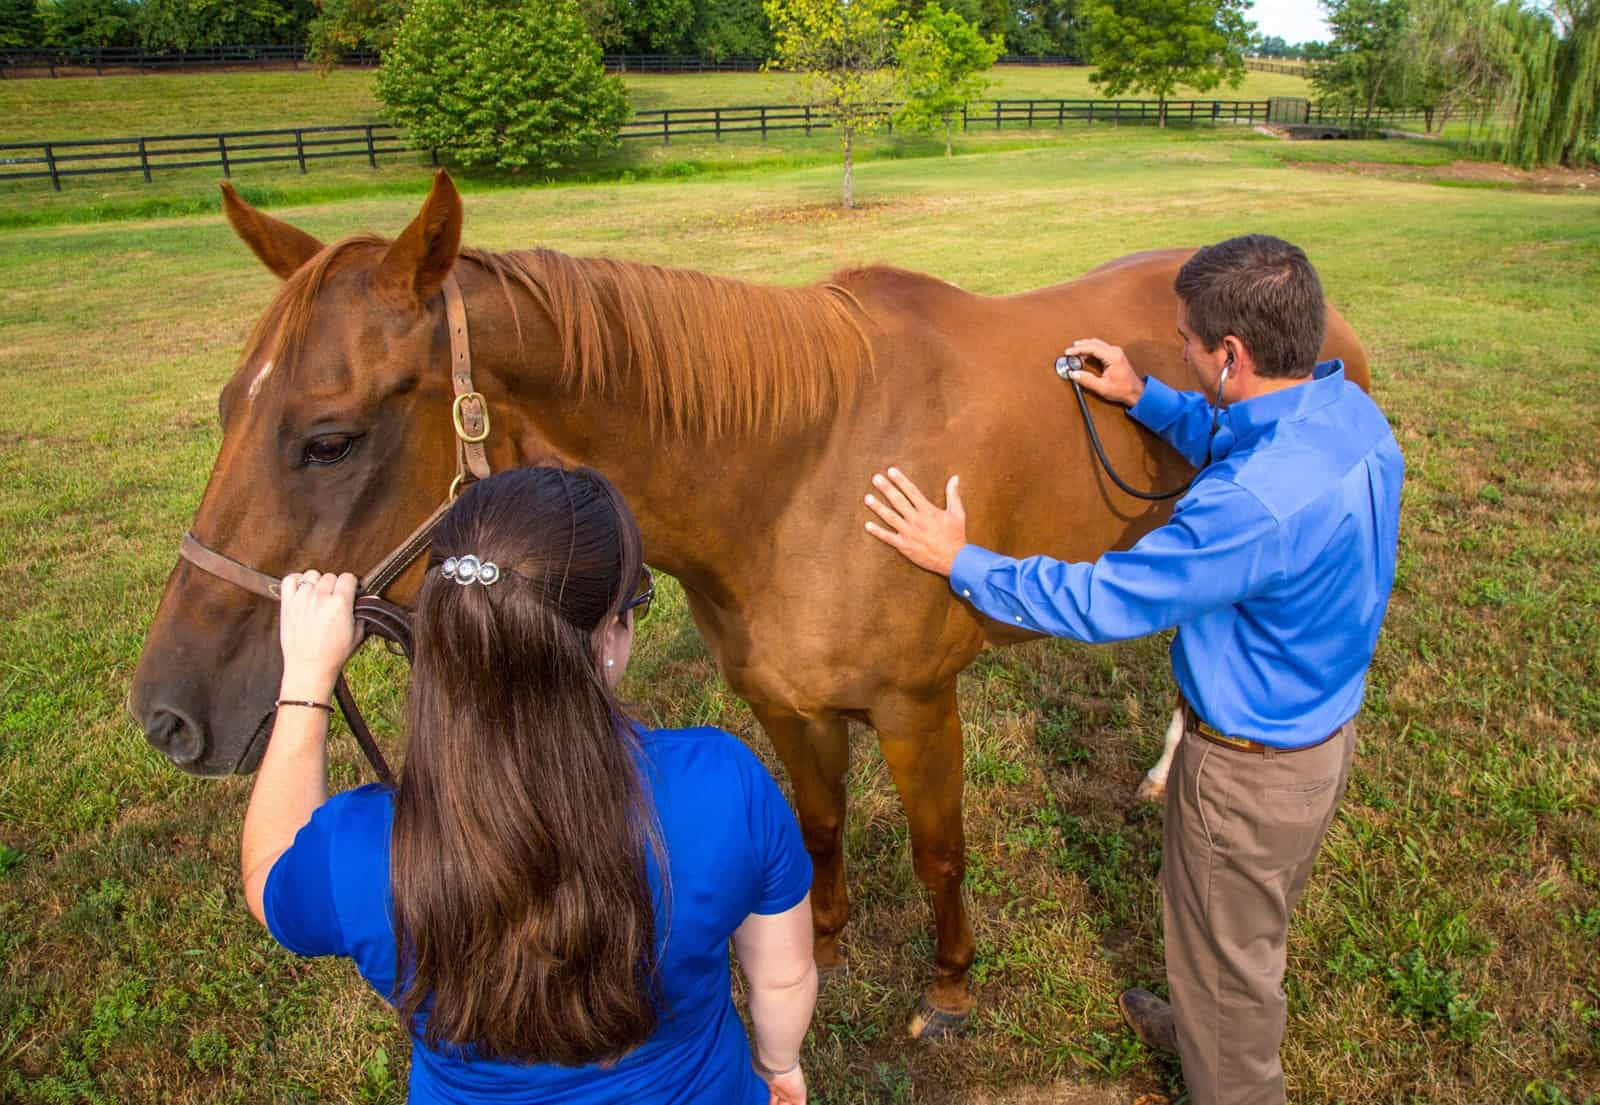 Preventing unwanted breeding is the best method to decrease the unwanted horse problem, to reduce equine suffering, and to improve the equine economy. - Together we can reduce the number of horses at risk.